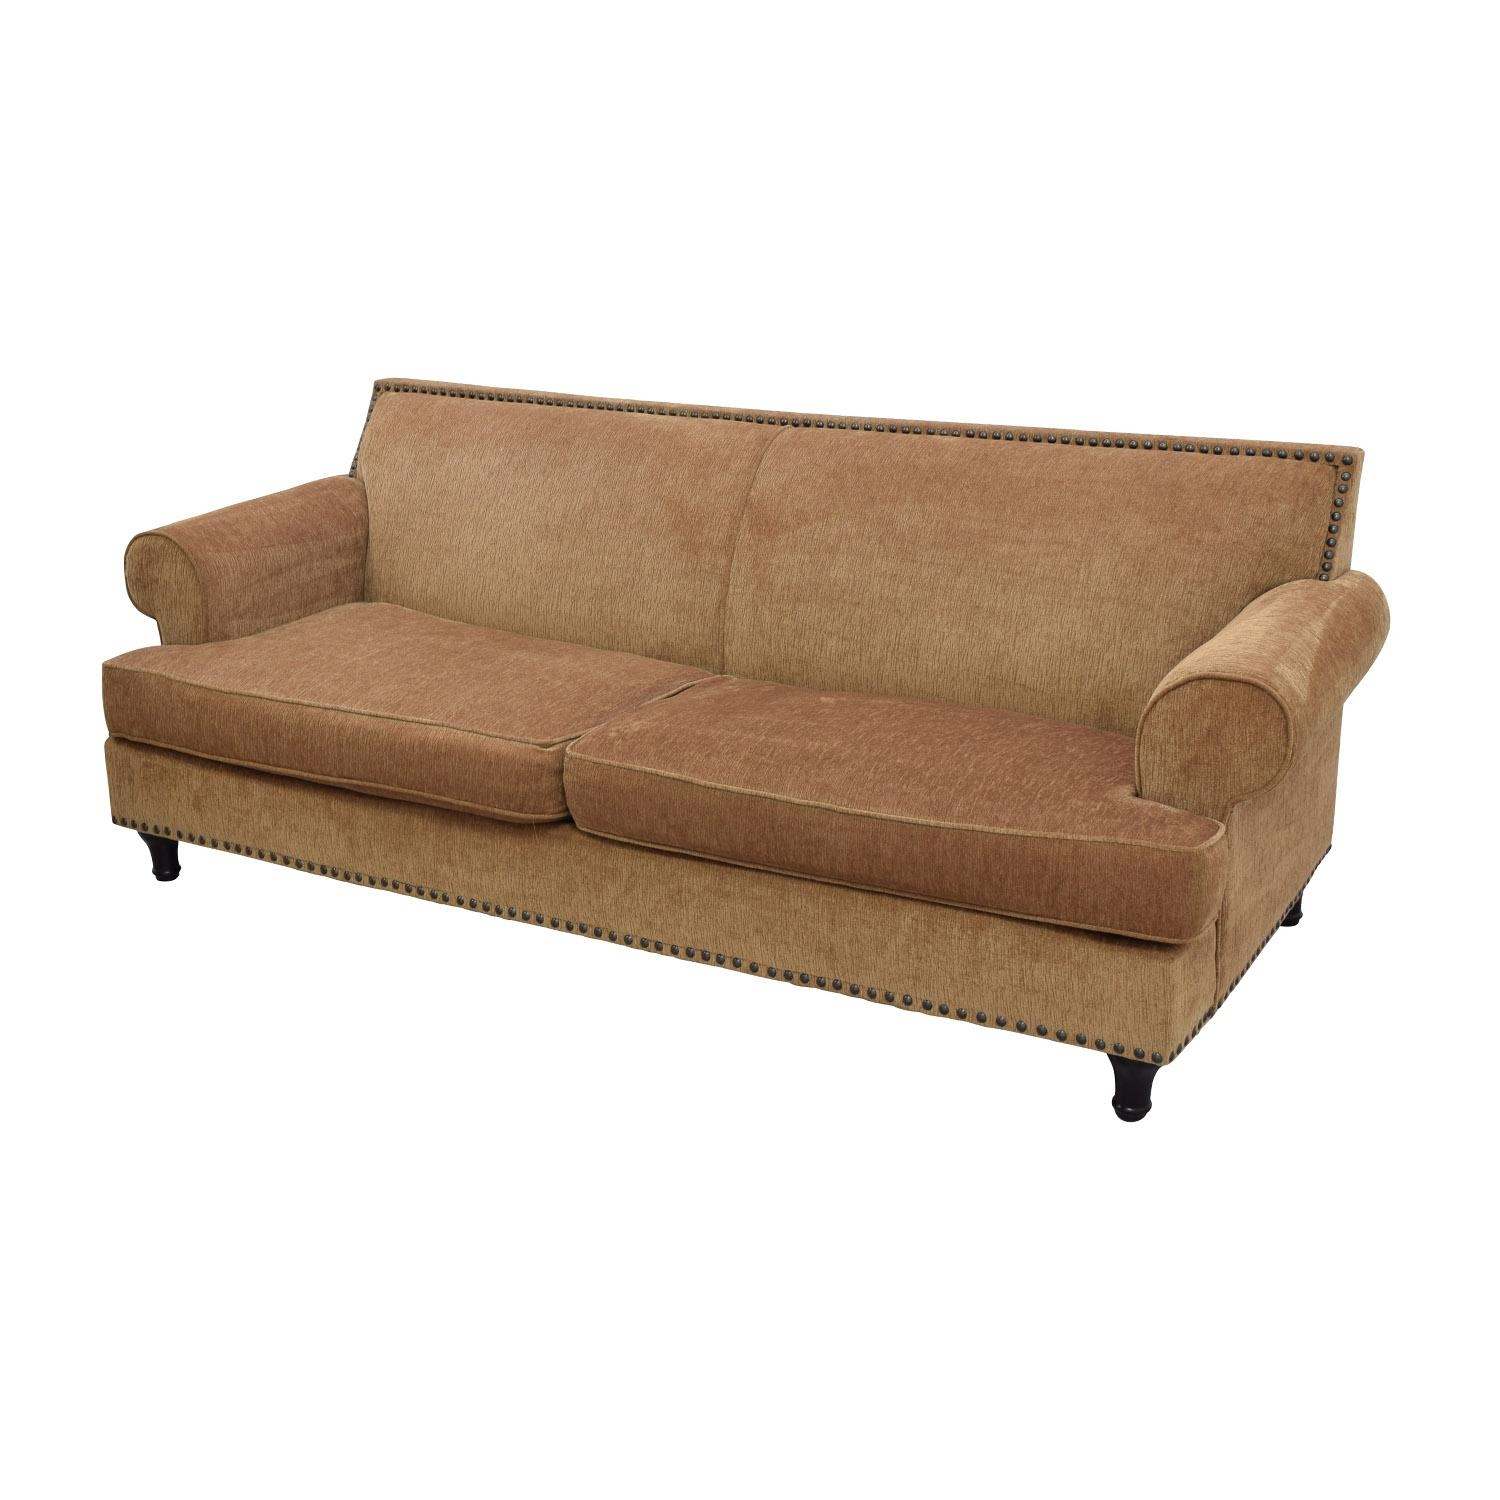 82% Off – Pier 1 Imports Pier 1 Imports Carmen Brown Sofa / Sofas Within Pier 1 Sofas (Image 10 of 20)